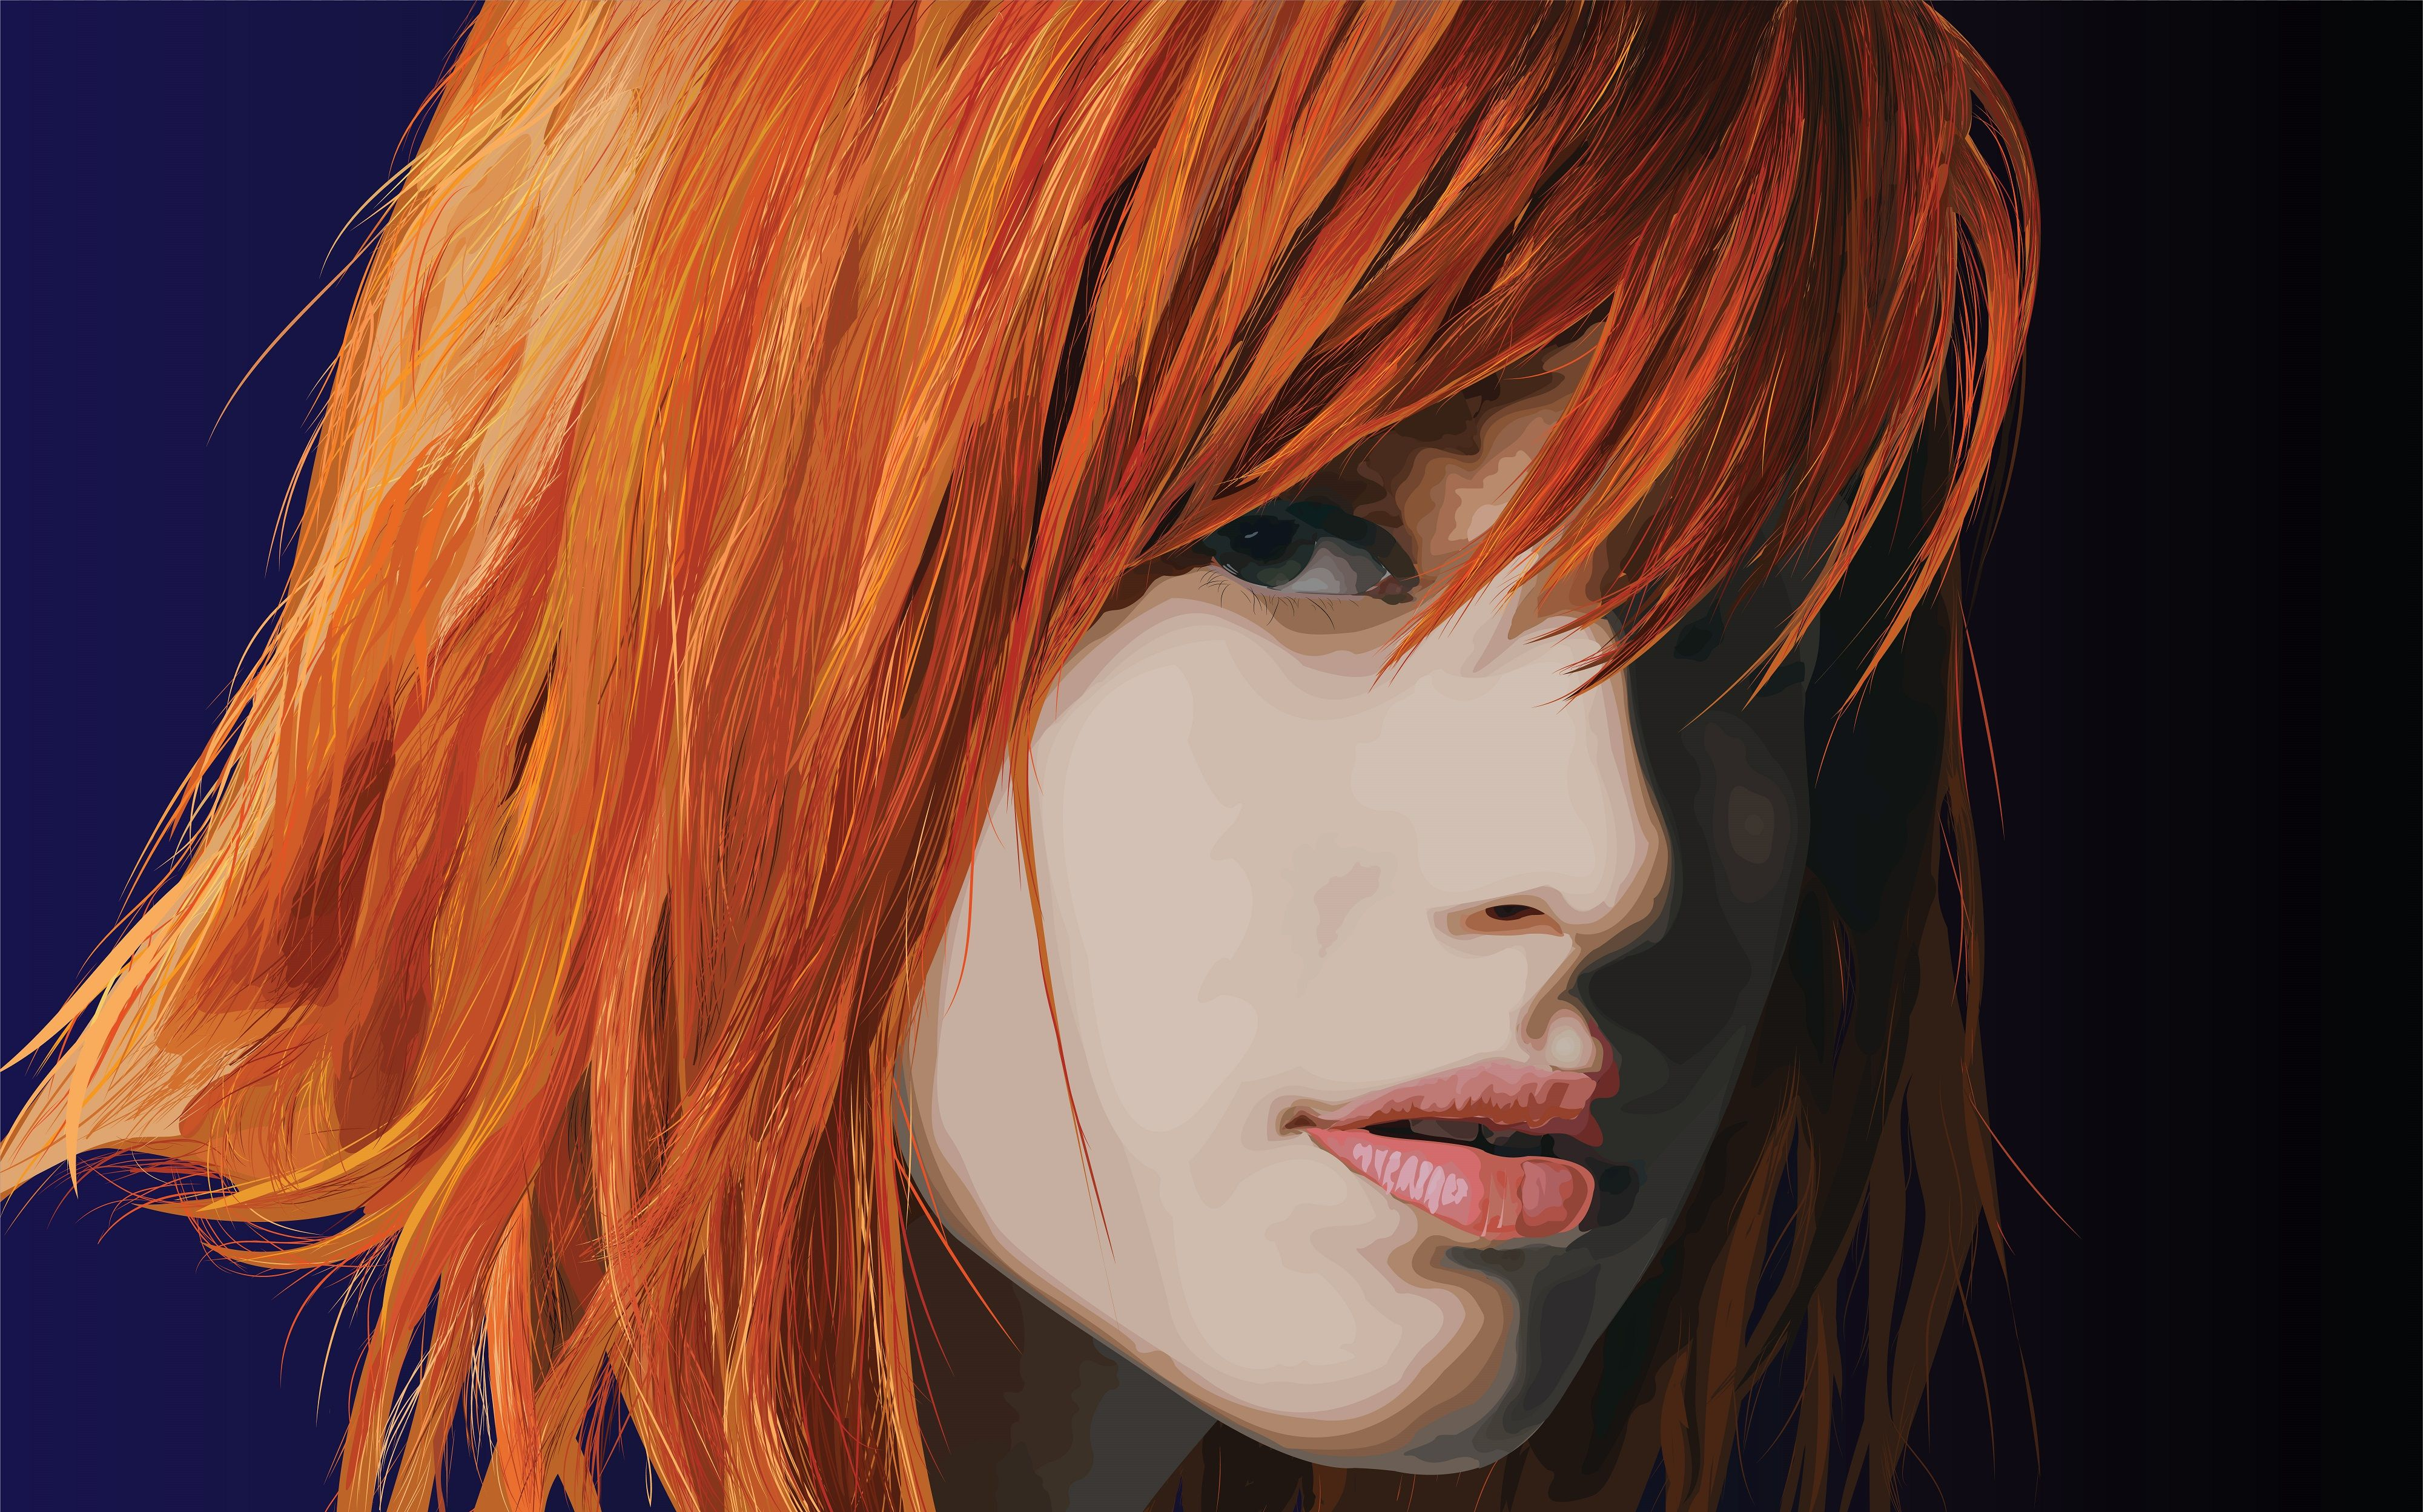 Vector Portrait of Hayley Williams of Paramore - Imgur